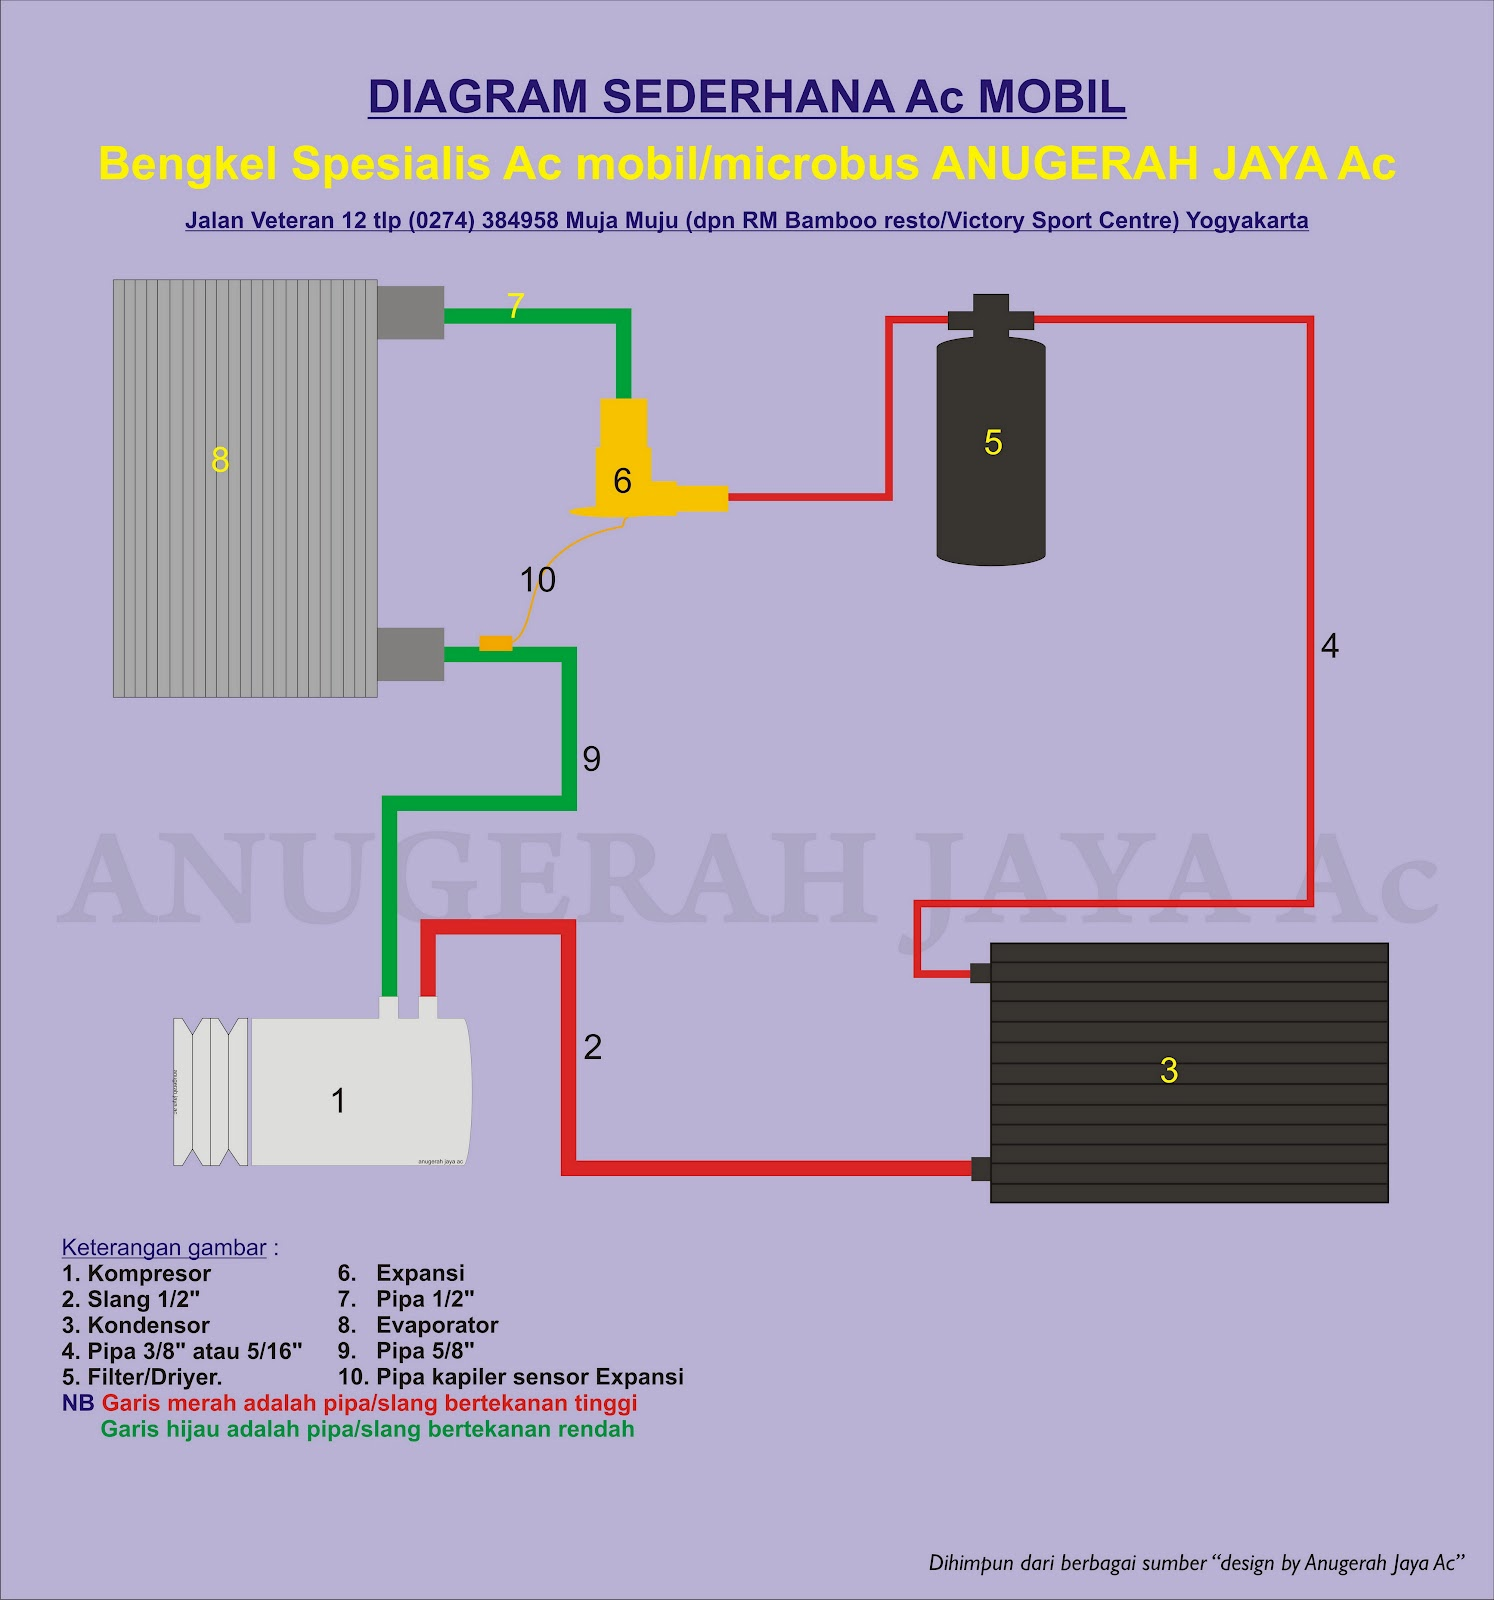 Wiring diagram kelistrikan ac split wiring diagram kelistrikan ac wiring diagram ac isuzu panther free download wiring diagram xwiaw rh xwiaw us 1996 isuzu trooper ccuart Gallery